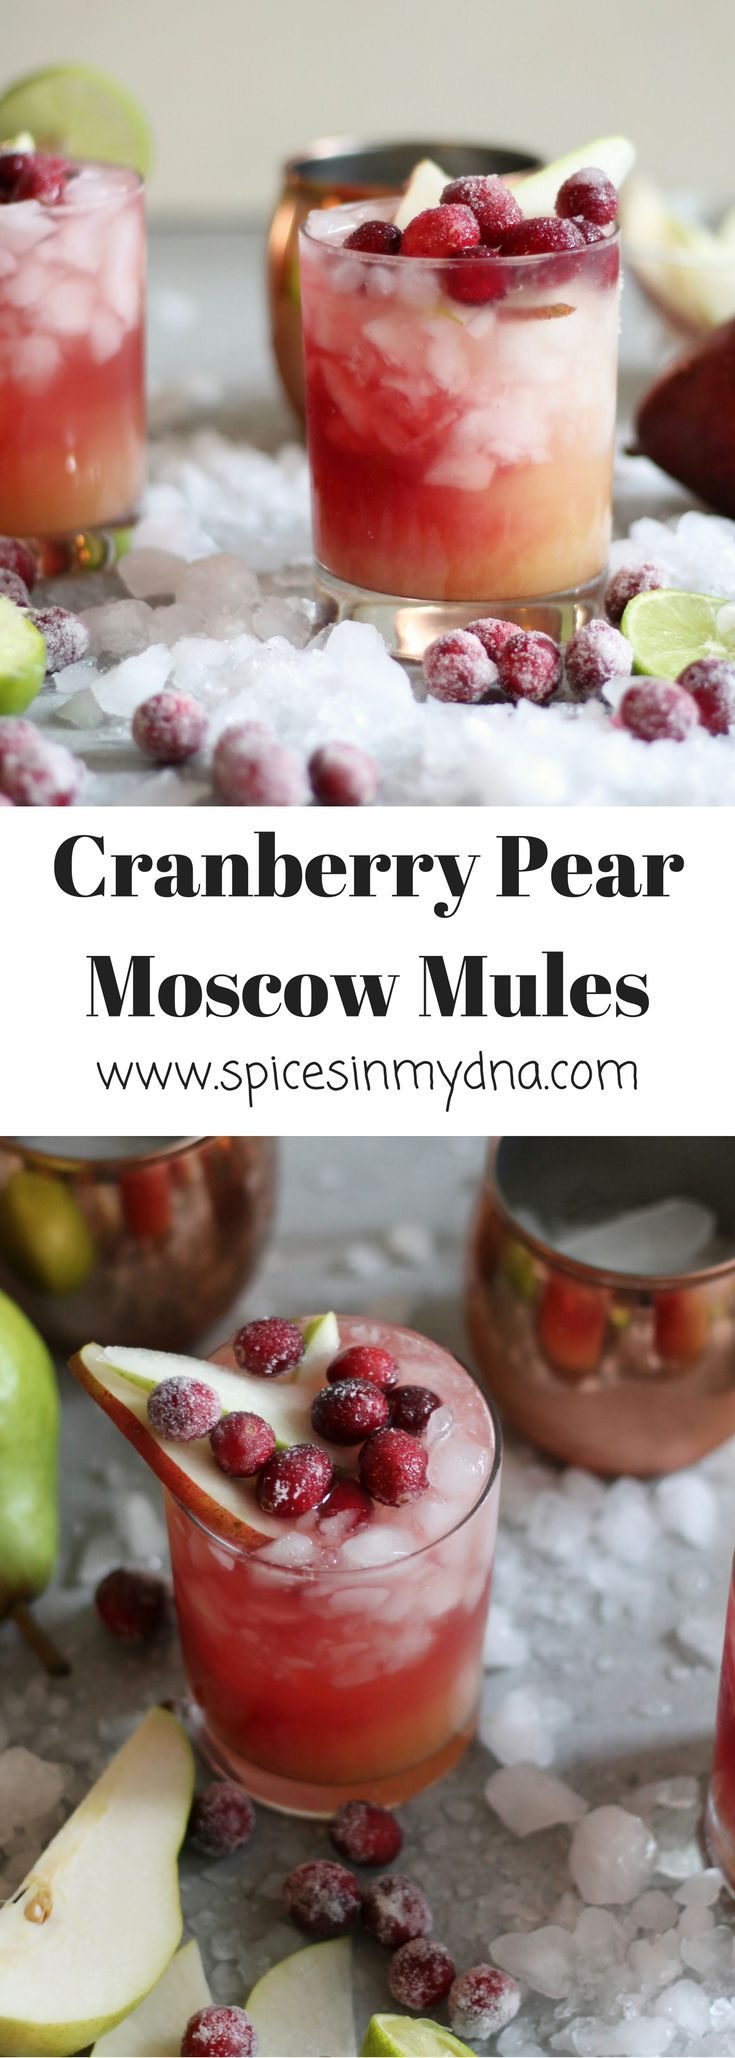 Cranberry Pear Moscow Mules